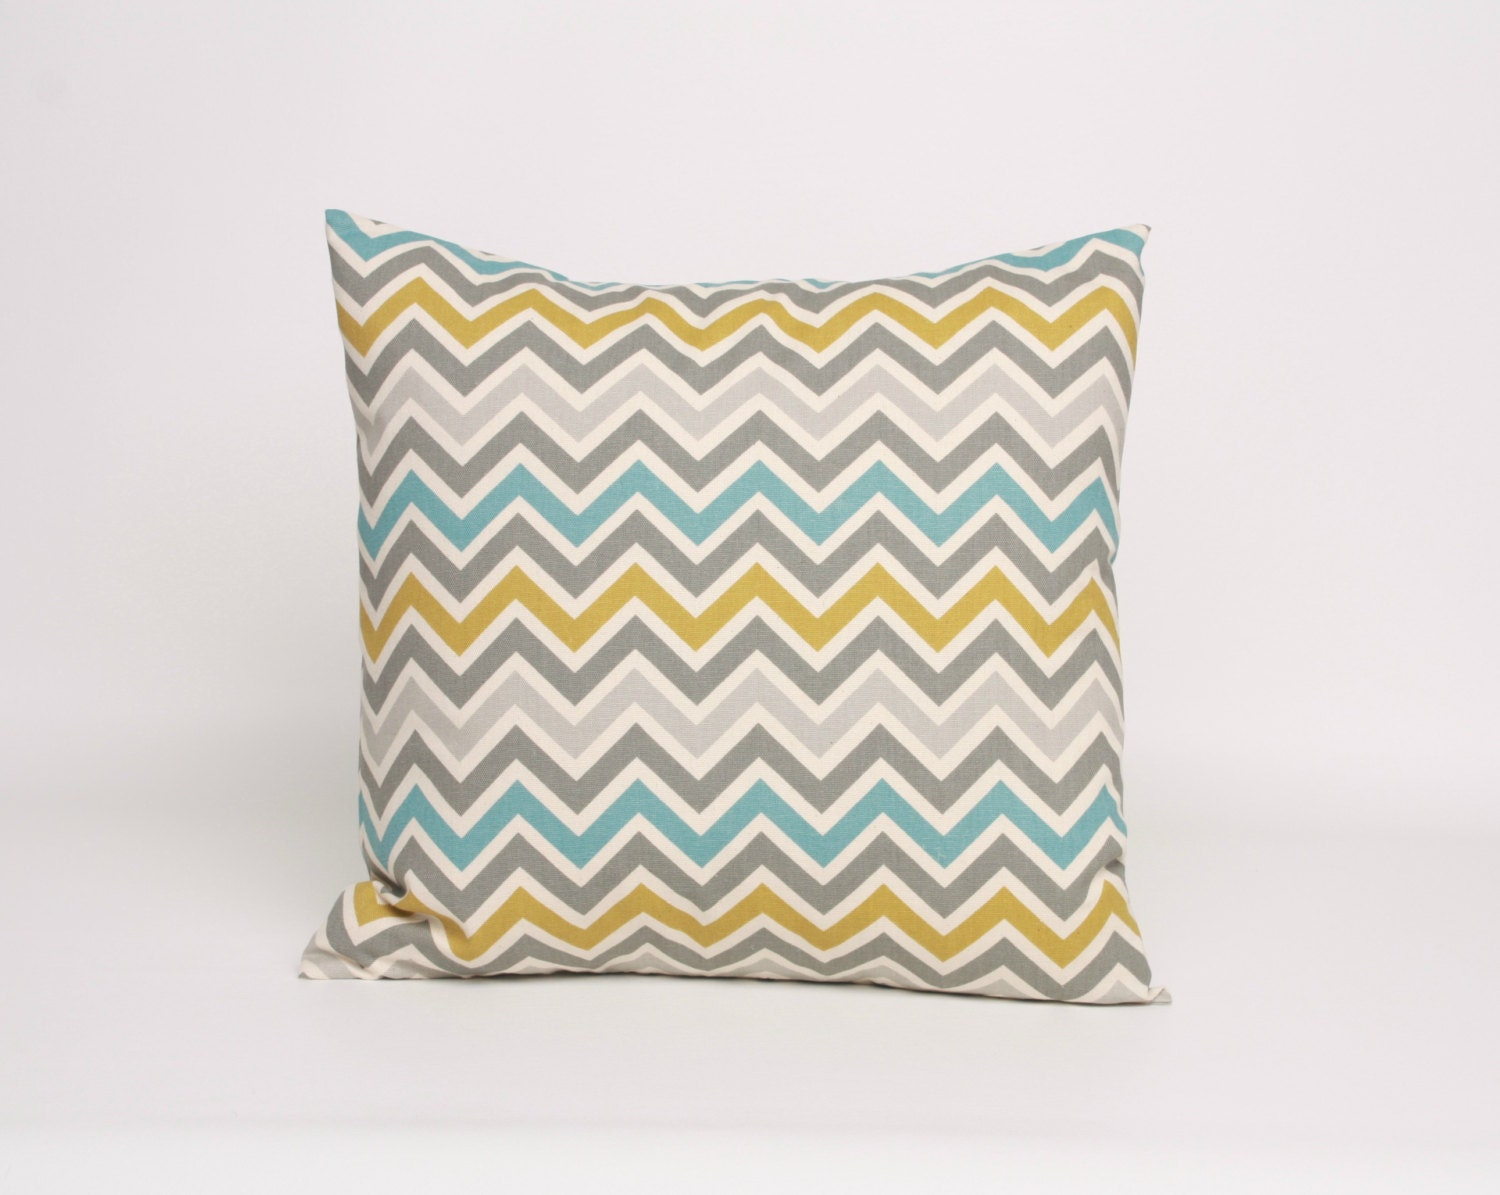 16 x 16 Throw Pillow Blue Gray and Green Chevron Pillow 16 x